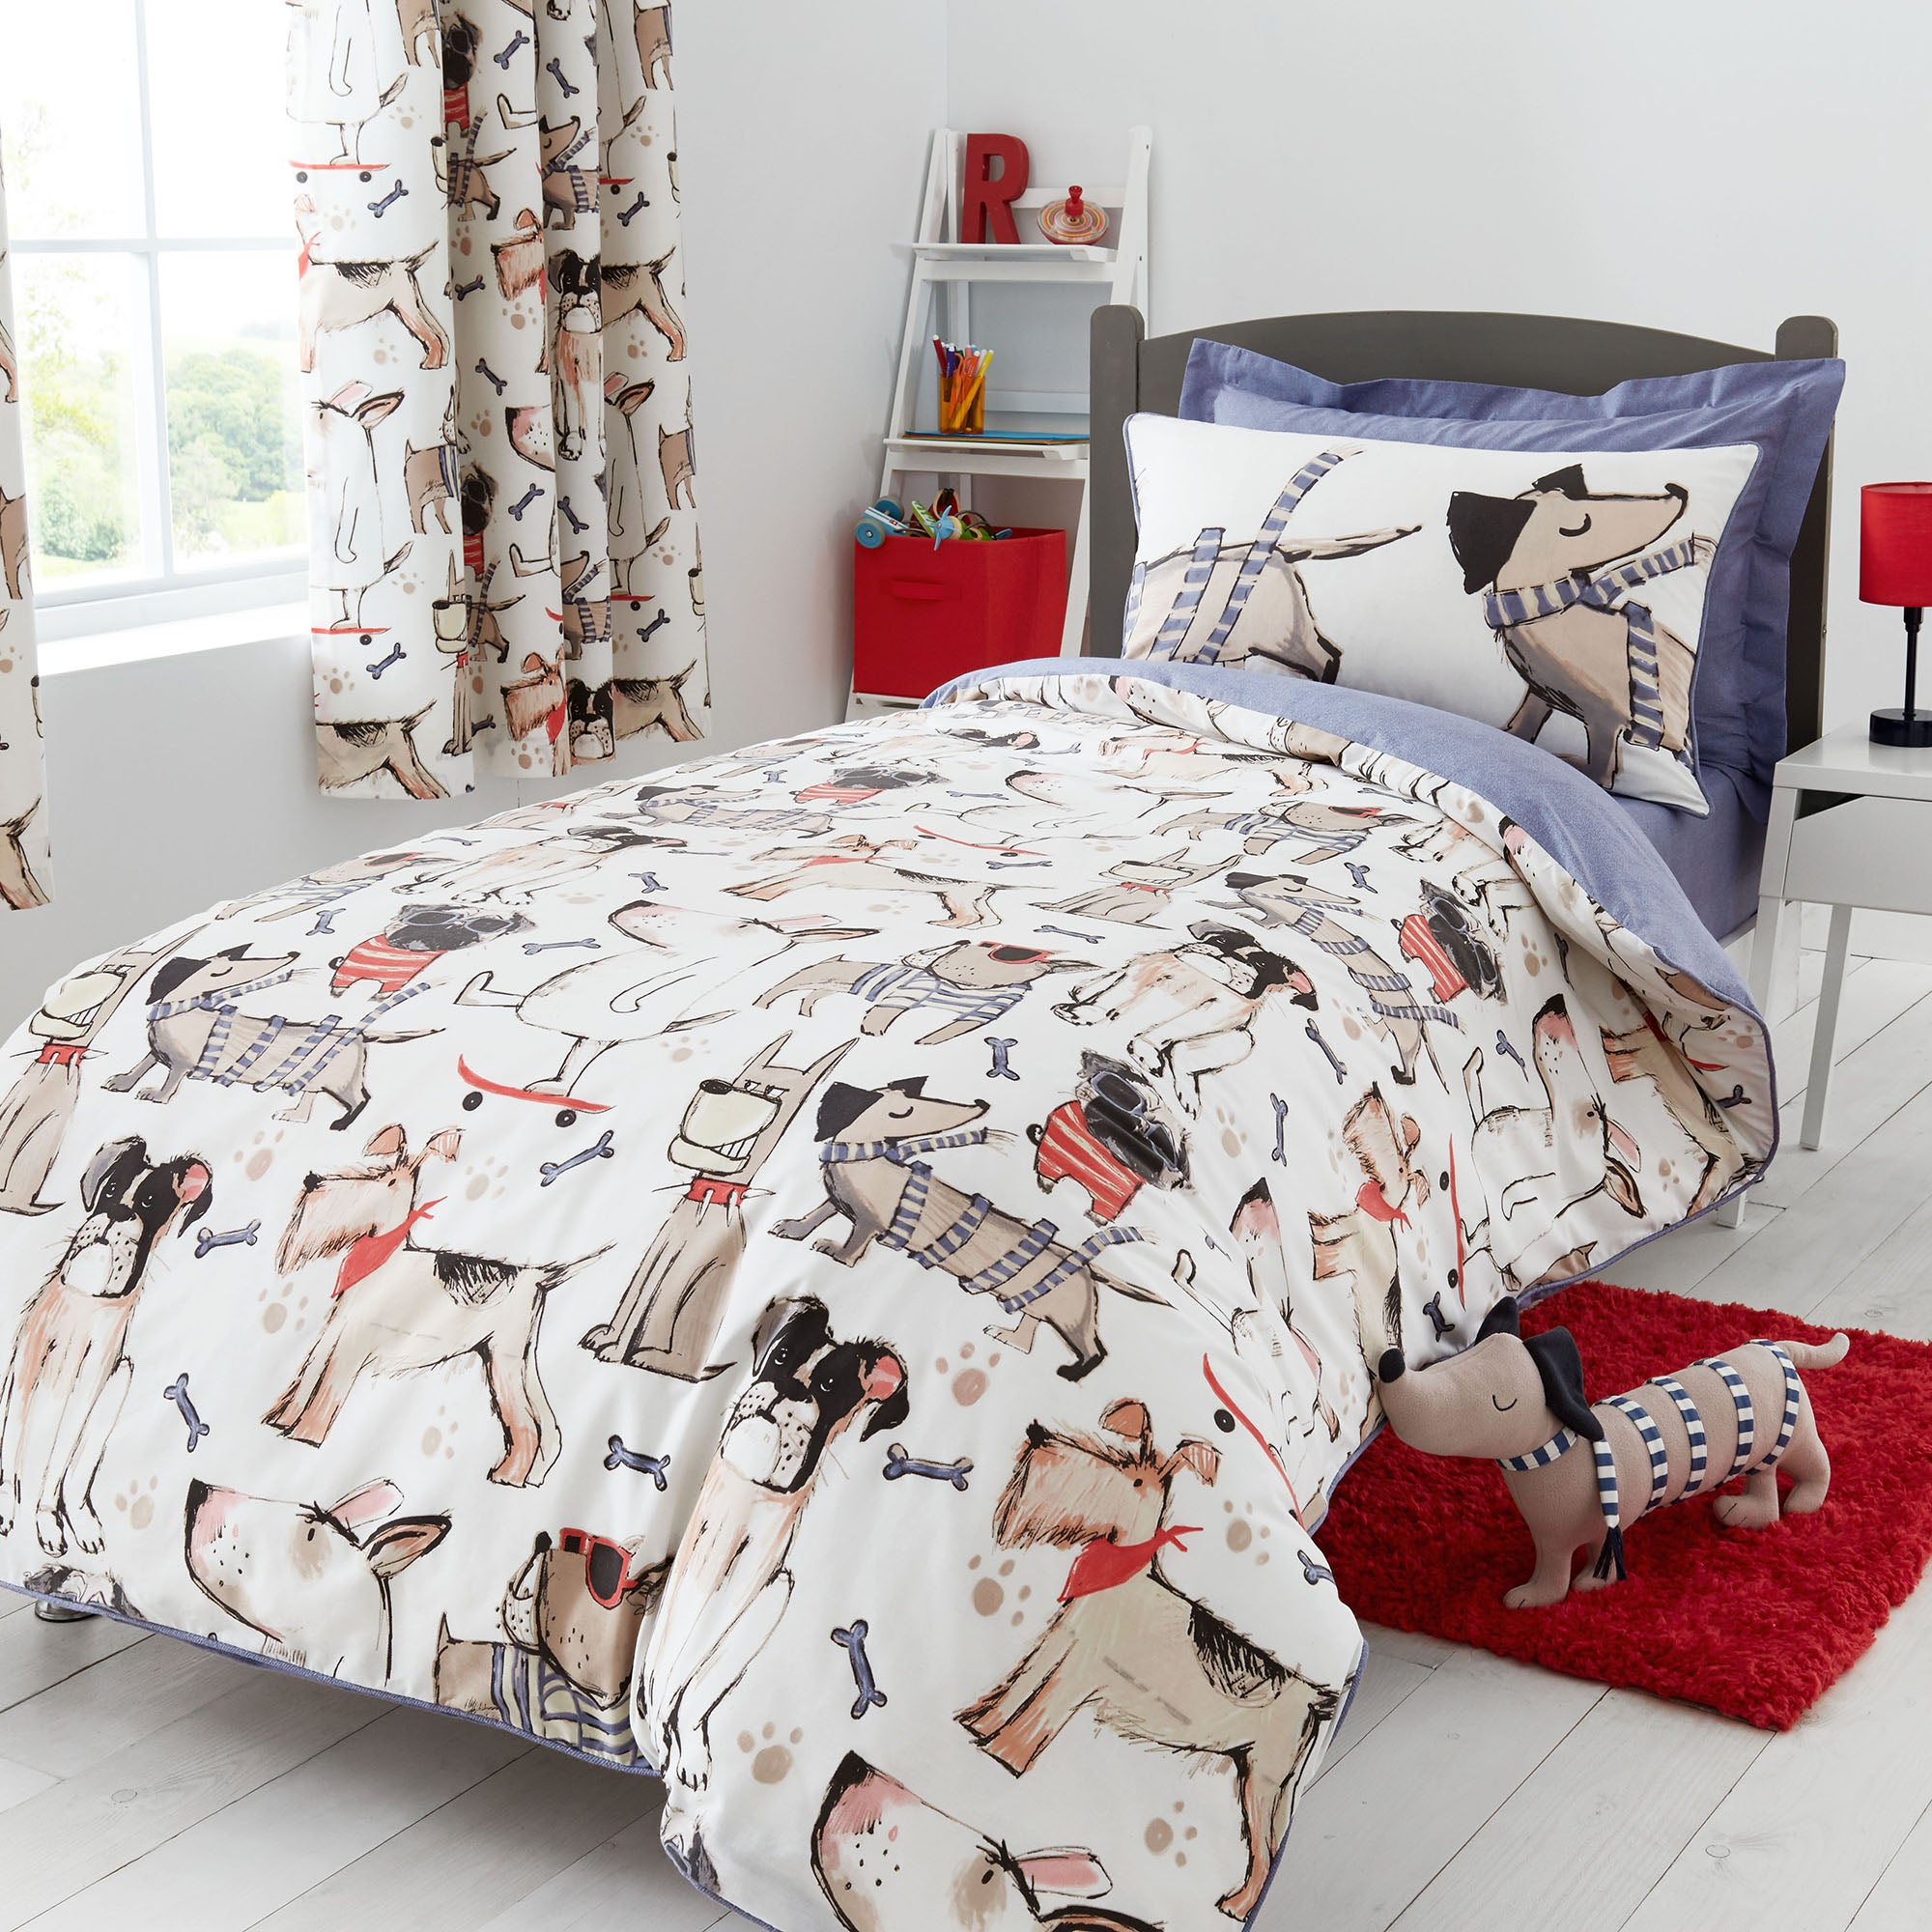 Doug and Friends Bed Linen Collection